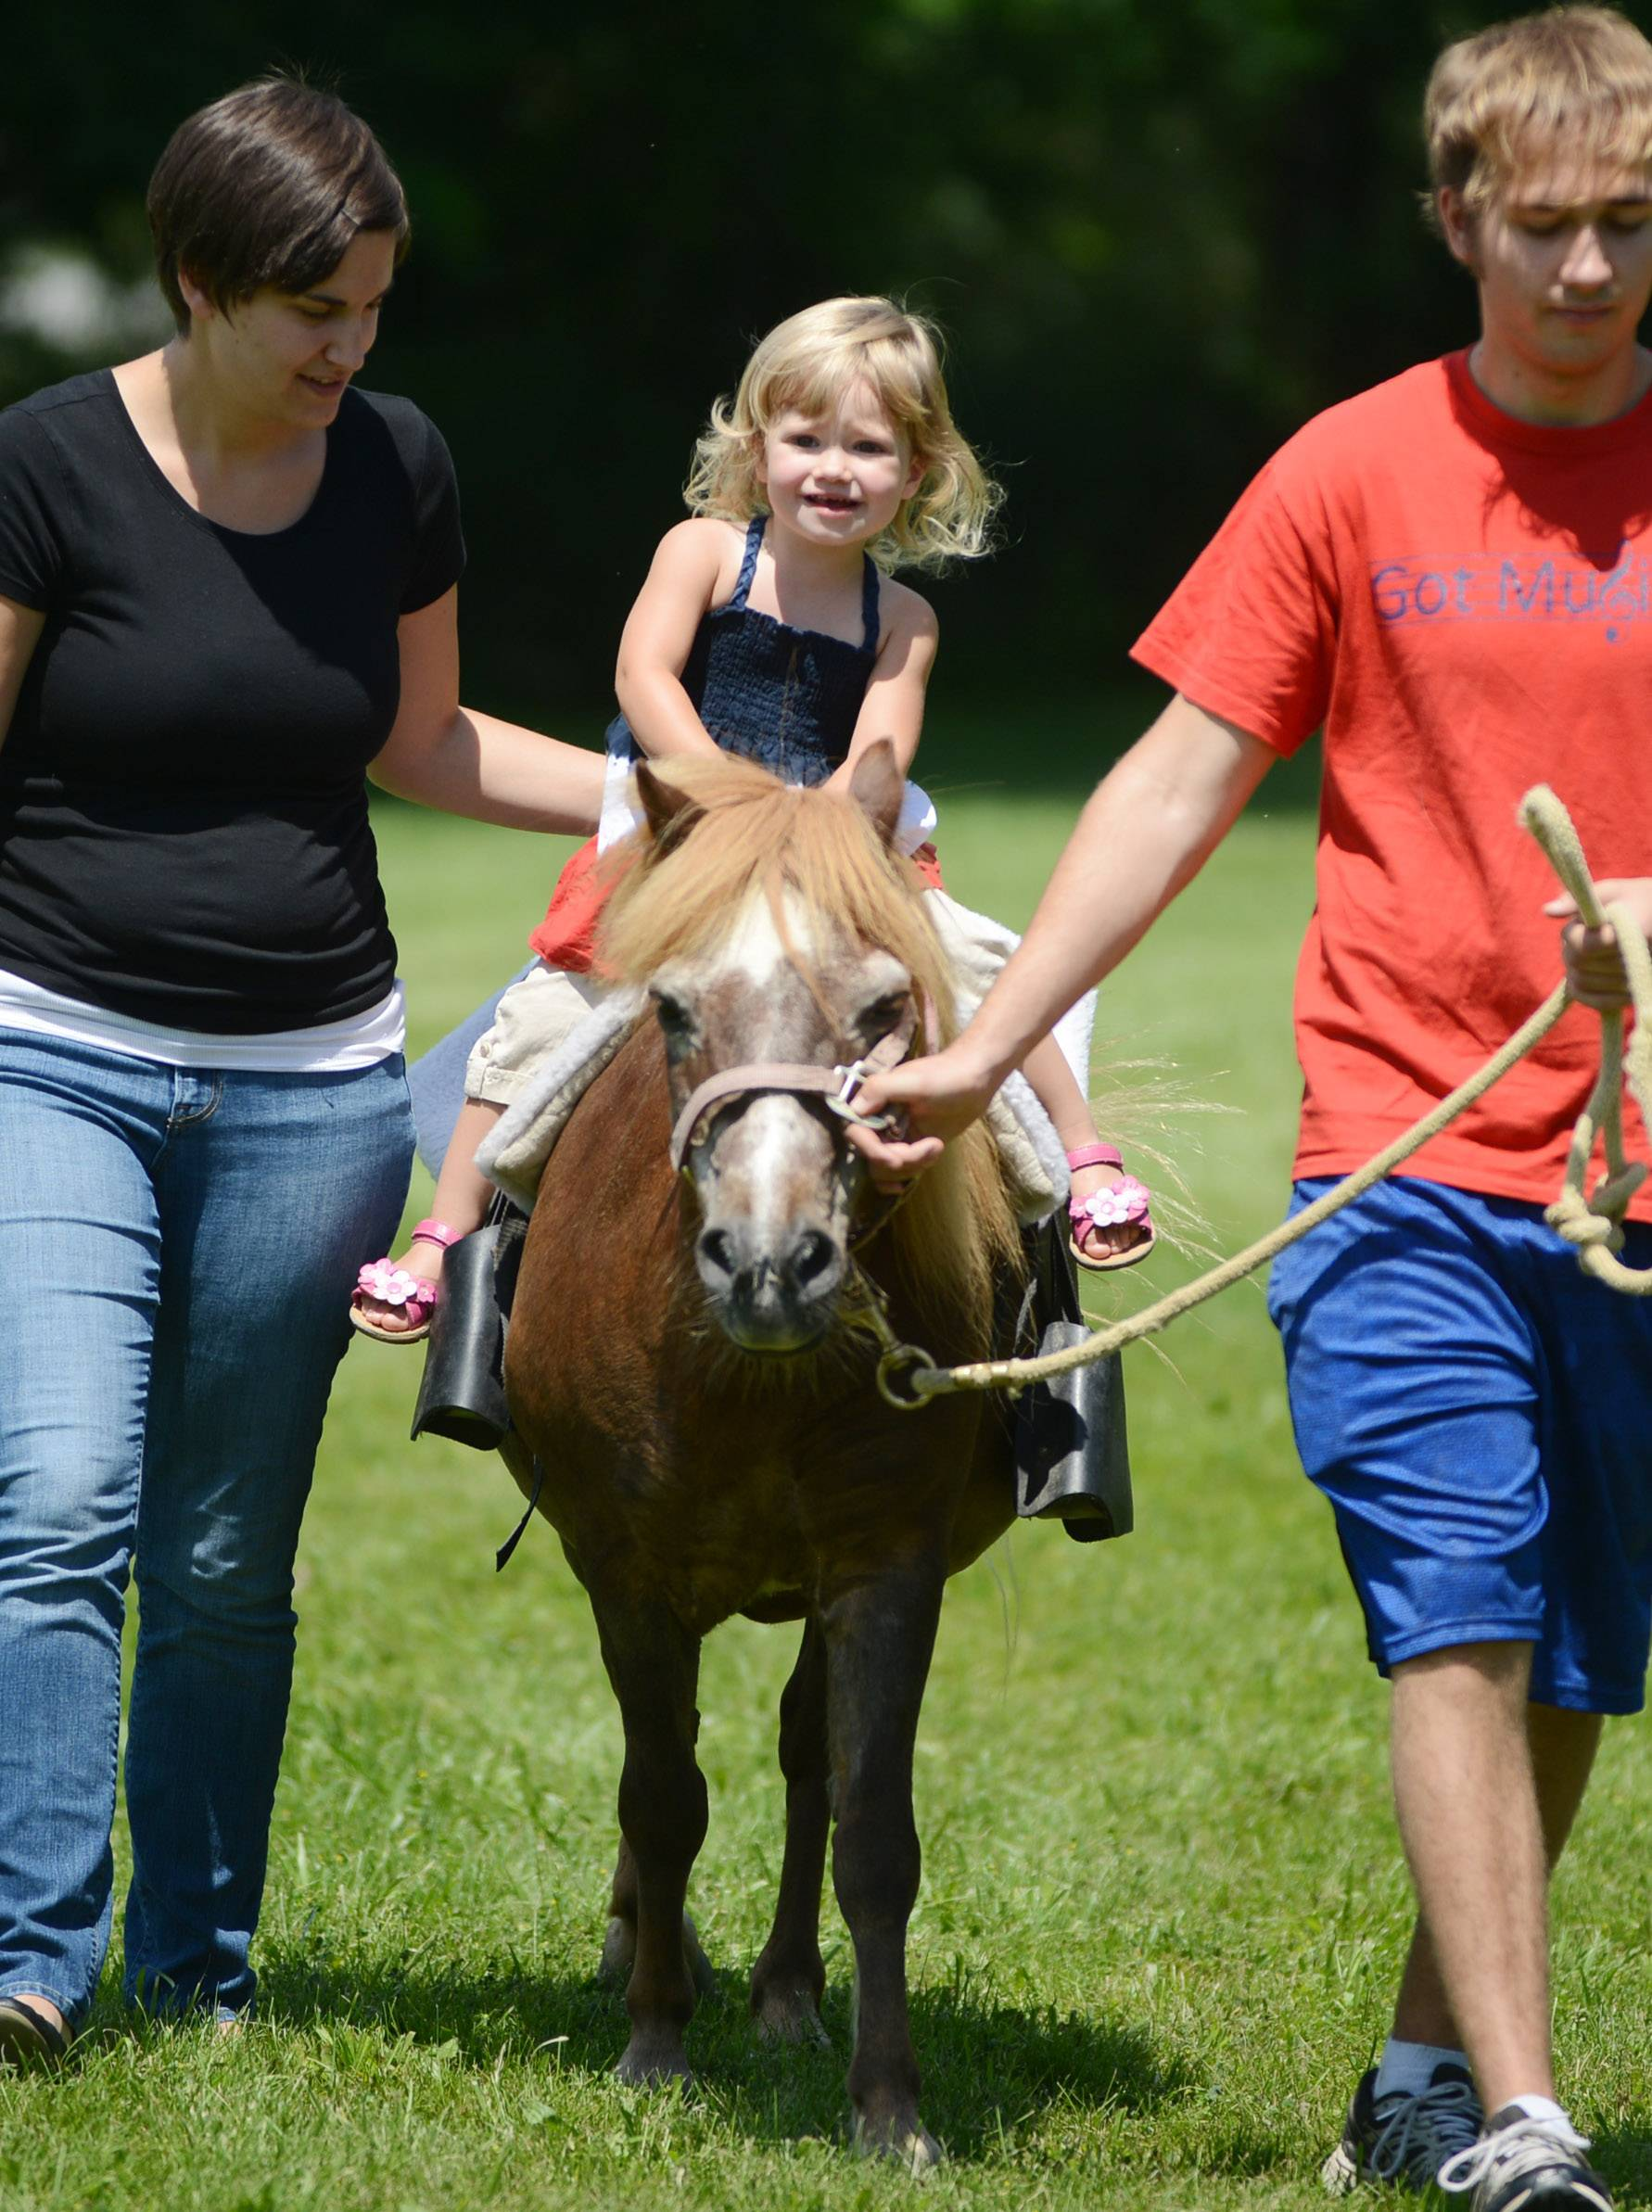 Nicole Dodge, left of McHenry, walks alongside her daughter Ainsley Dodge, 2, during a pony ride Friday at Island Lake's town picnic in Veteran's Park.